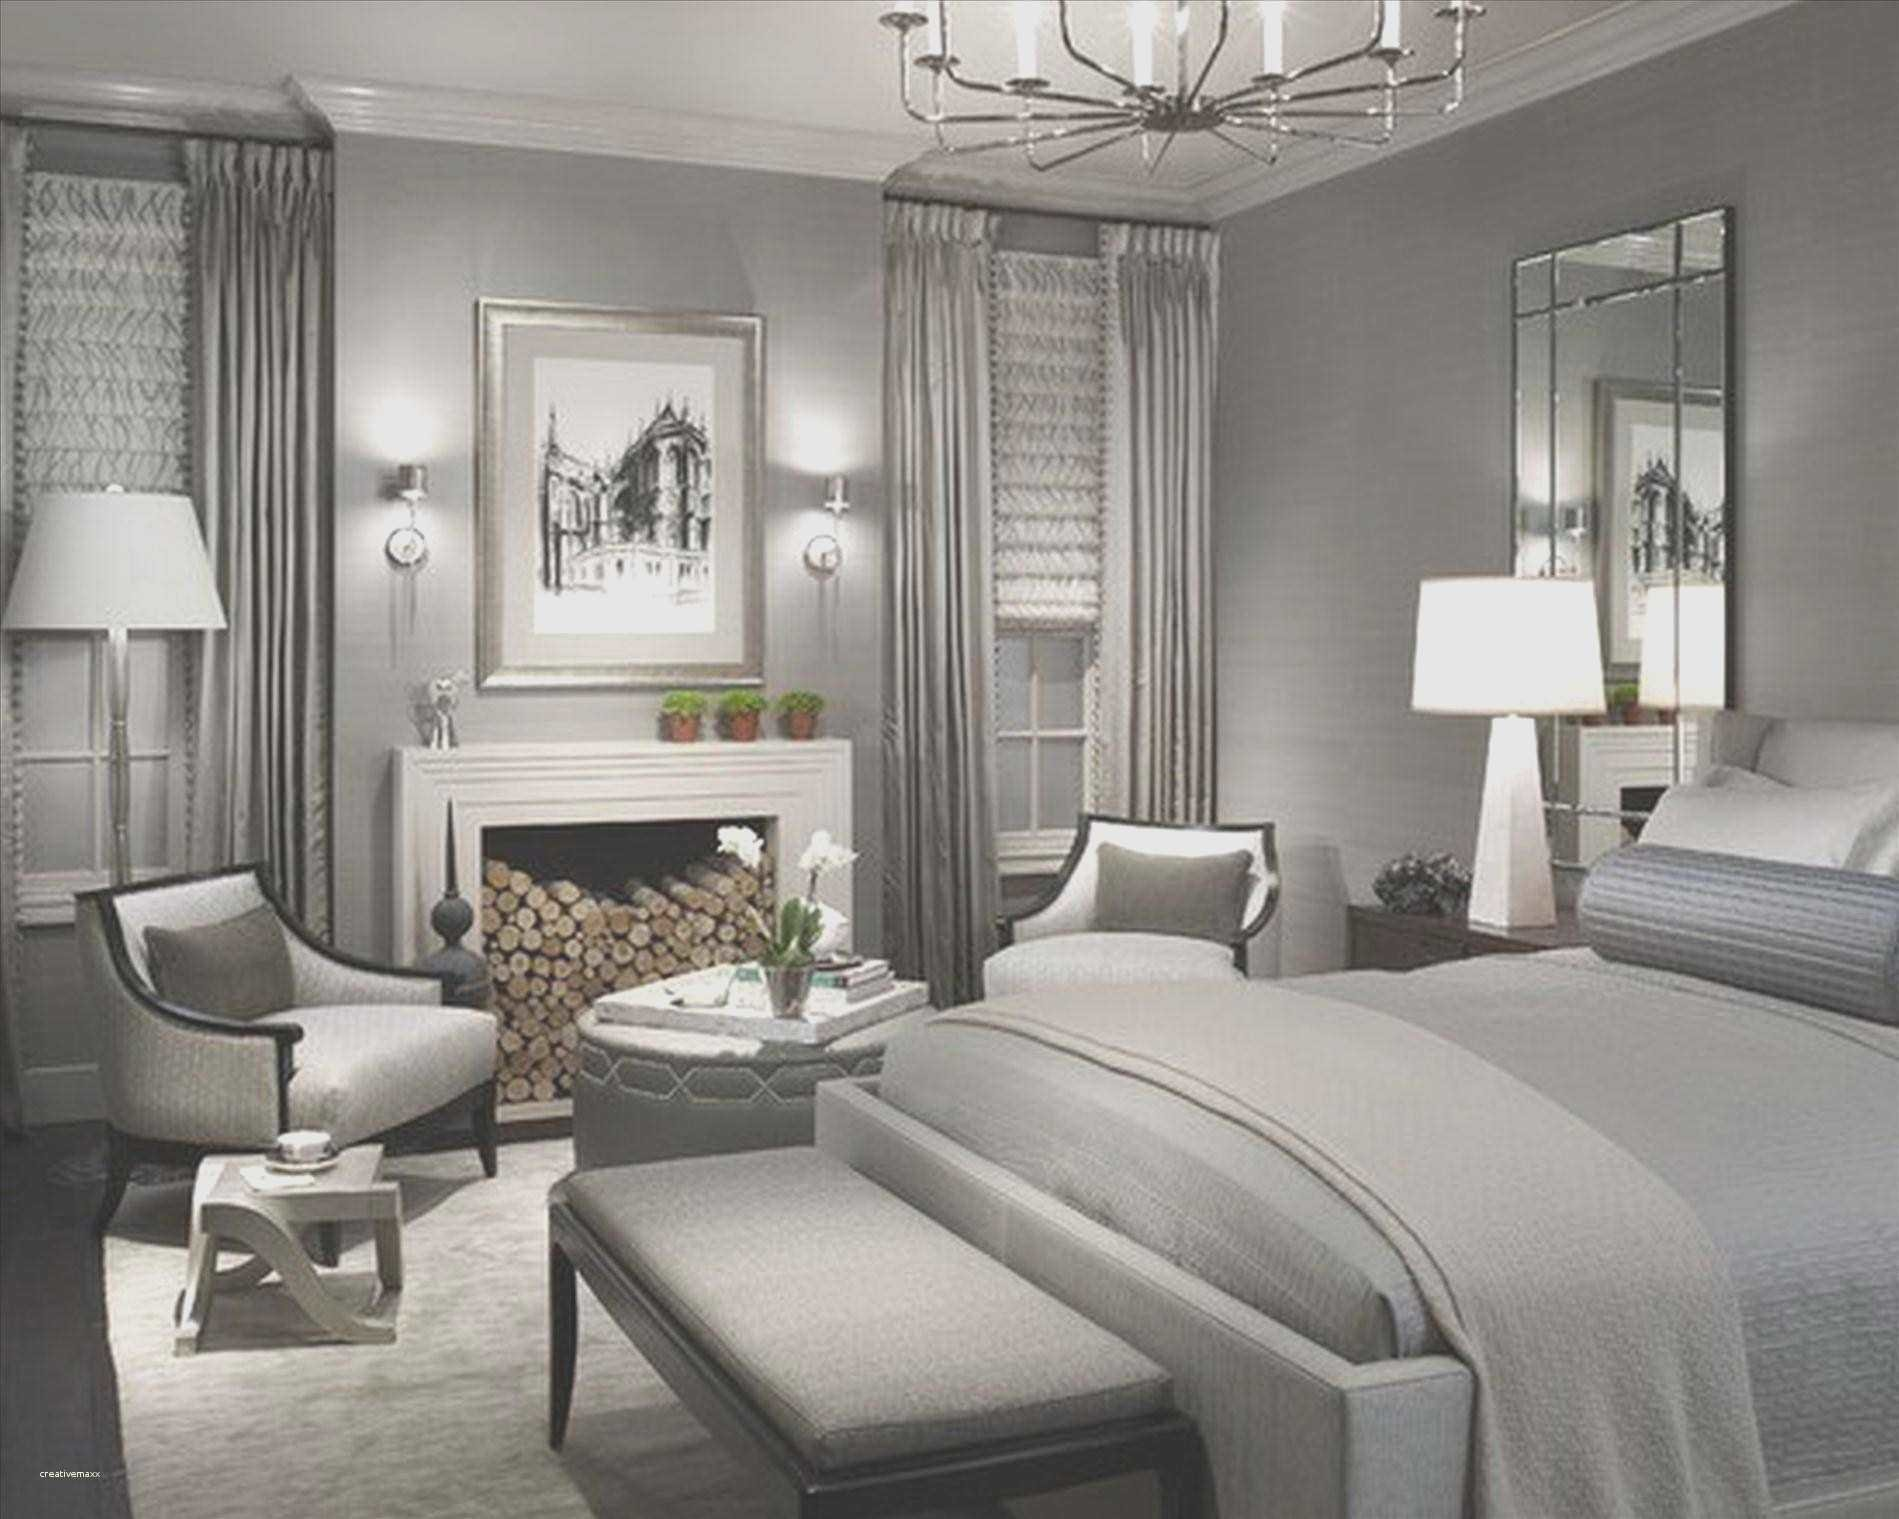 Best New Romantic Master Bedroom Ideas On A Budget Creative With Pictures